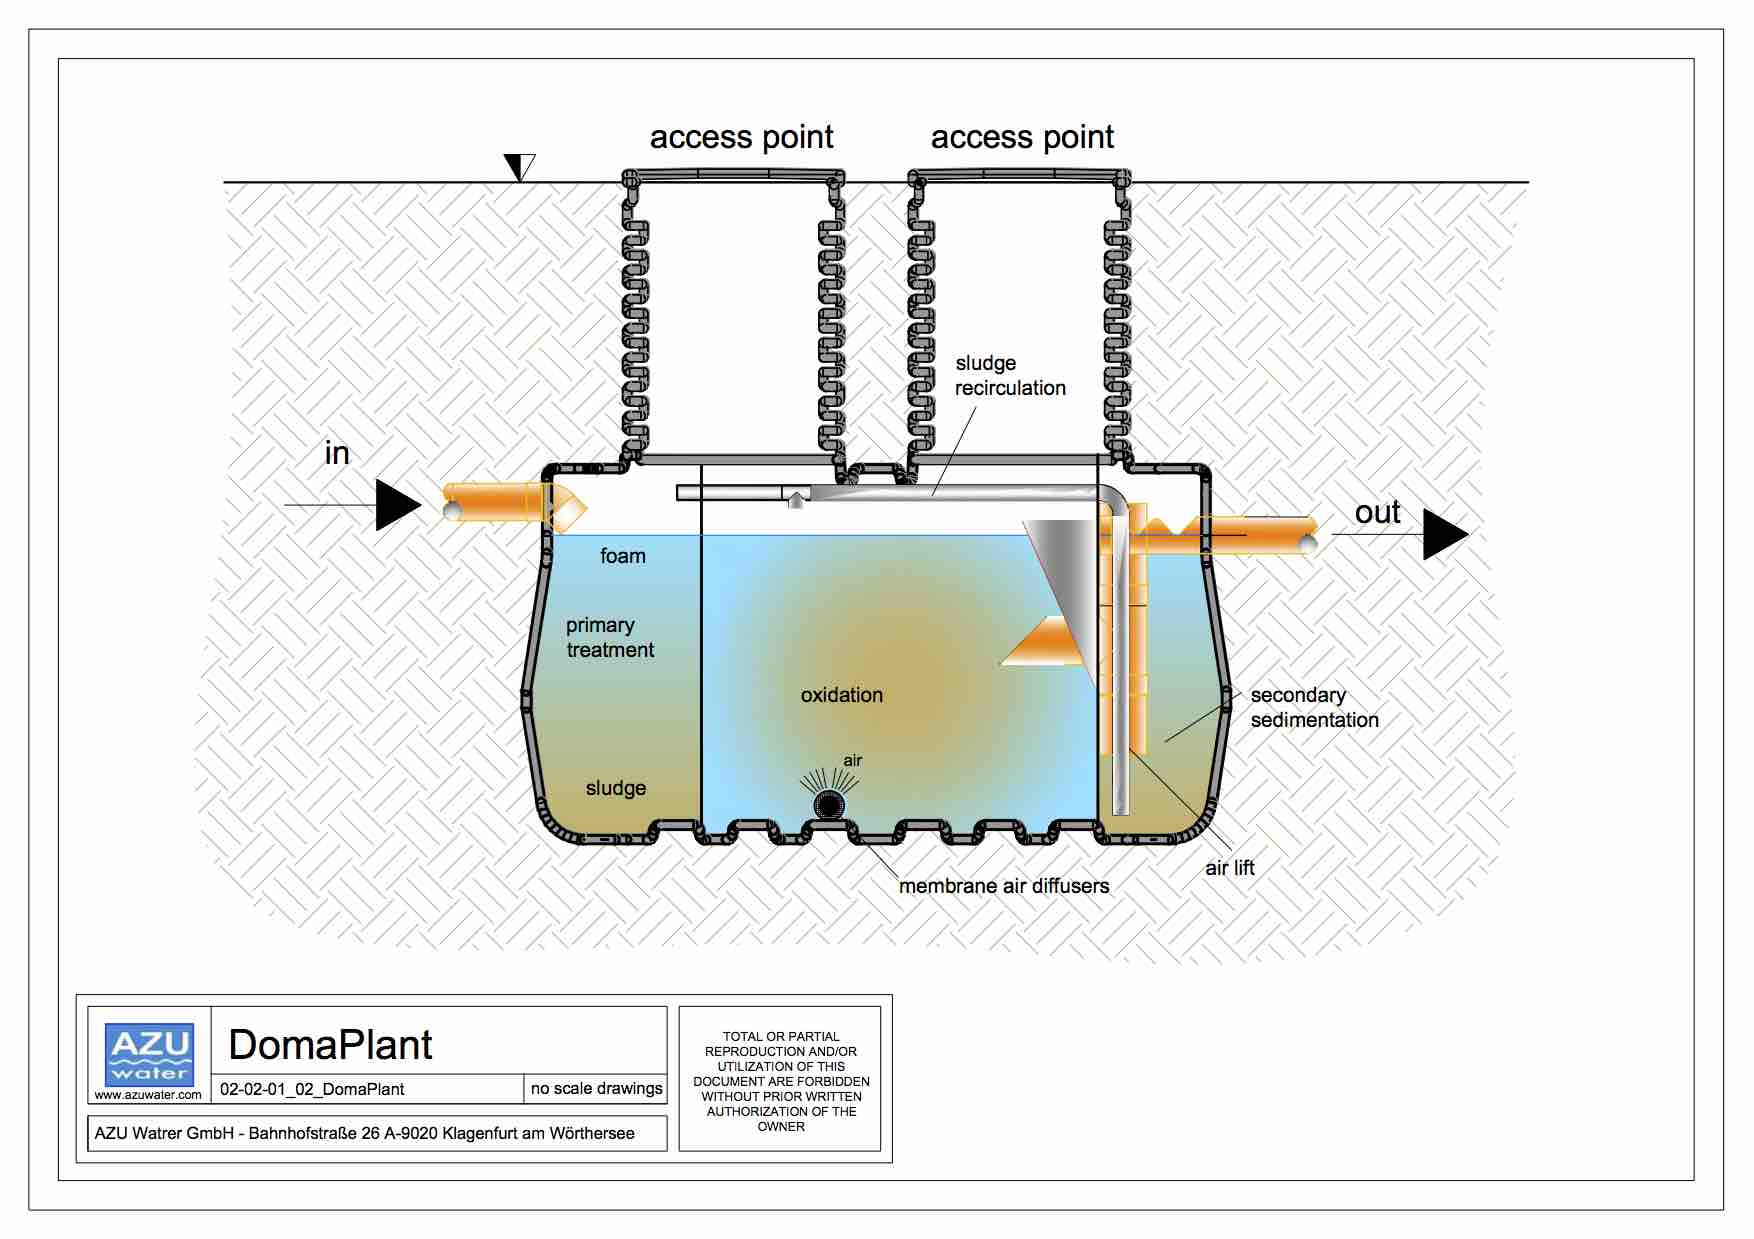 Household Domestic Treatment Domaplant Azu Water Process Flow Diagram Wastewater Plant Activated Sludge Small For Model Section